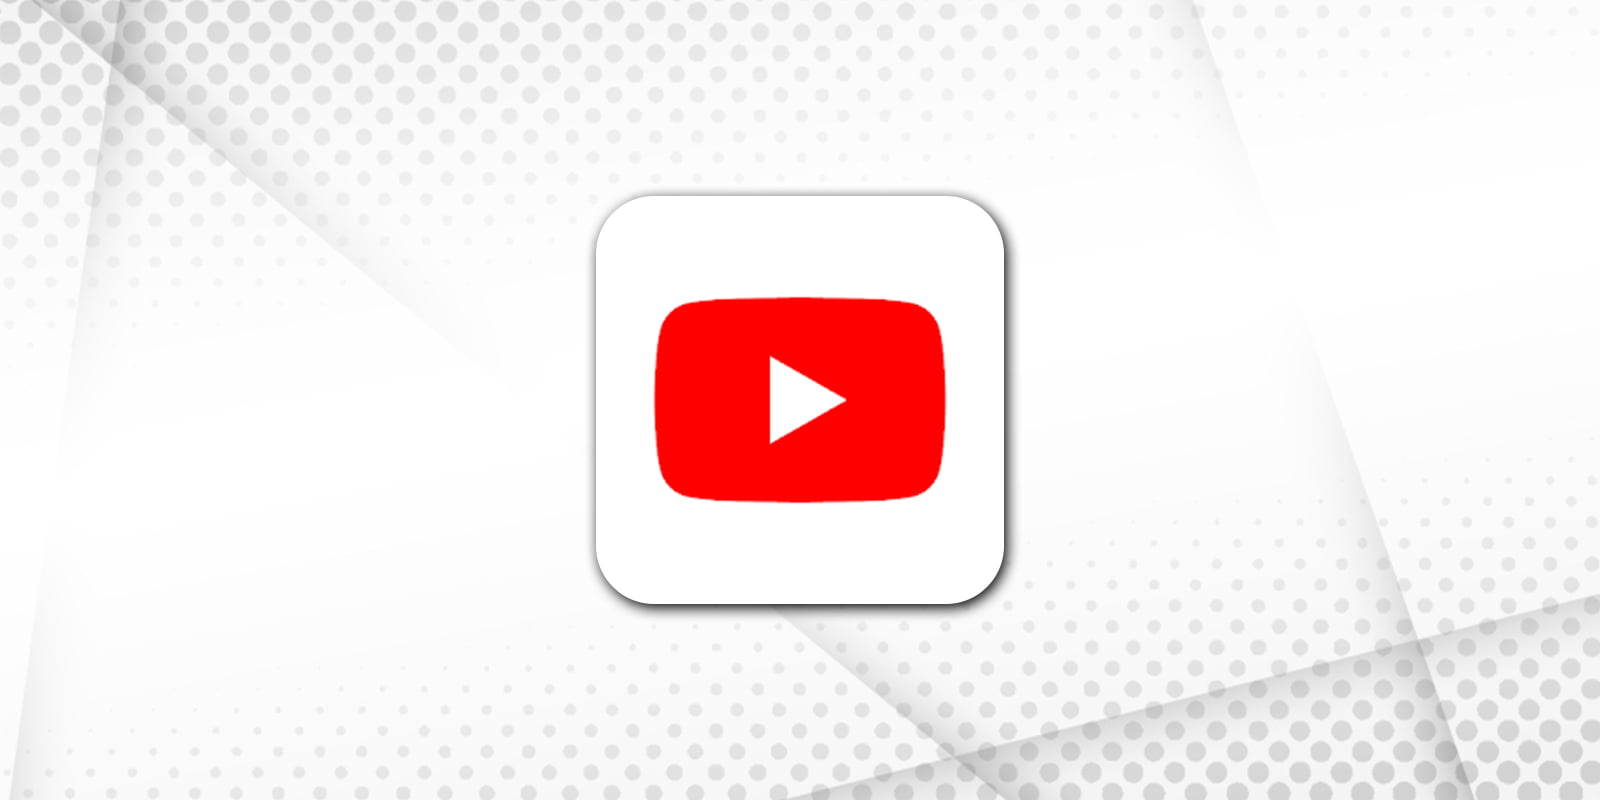 YouTube begins testing copyright check tool for videos